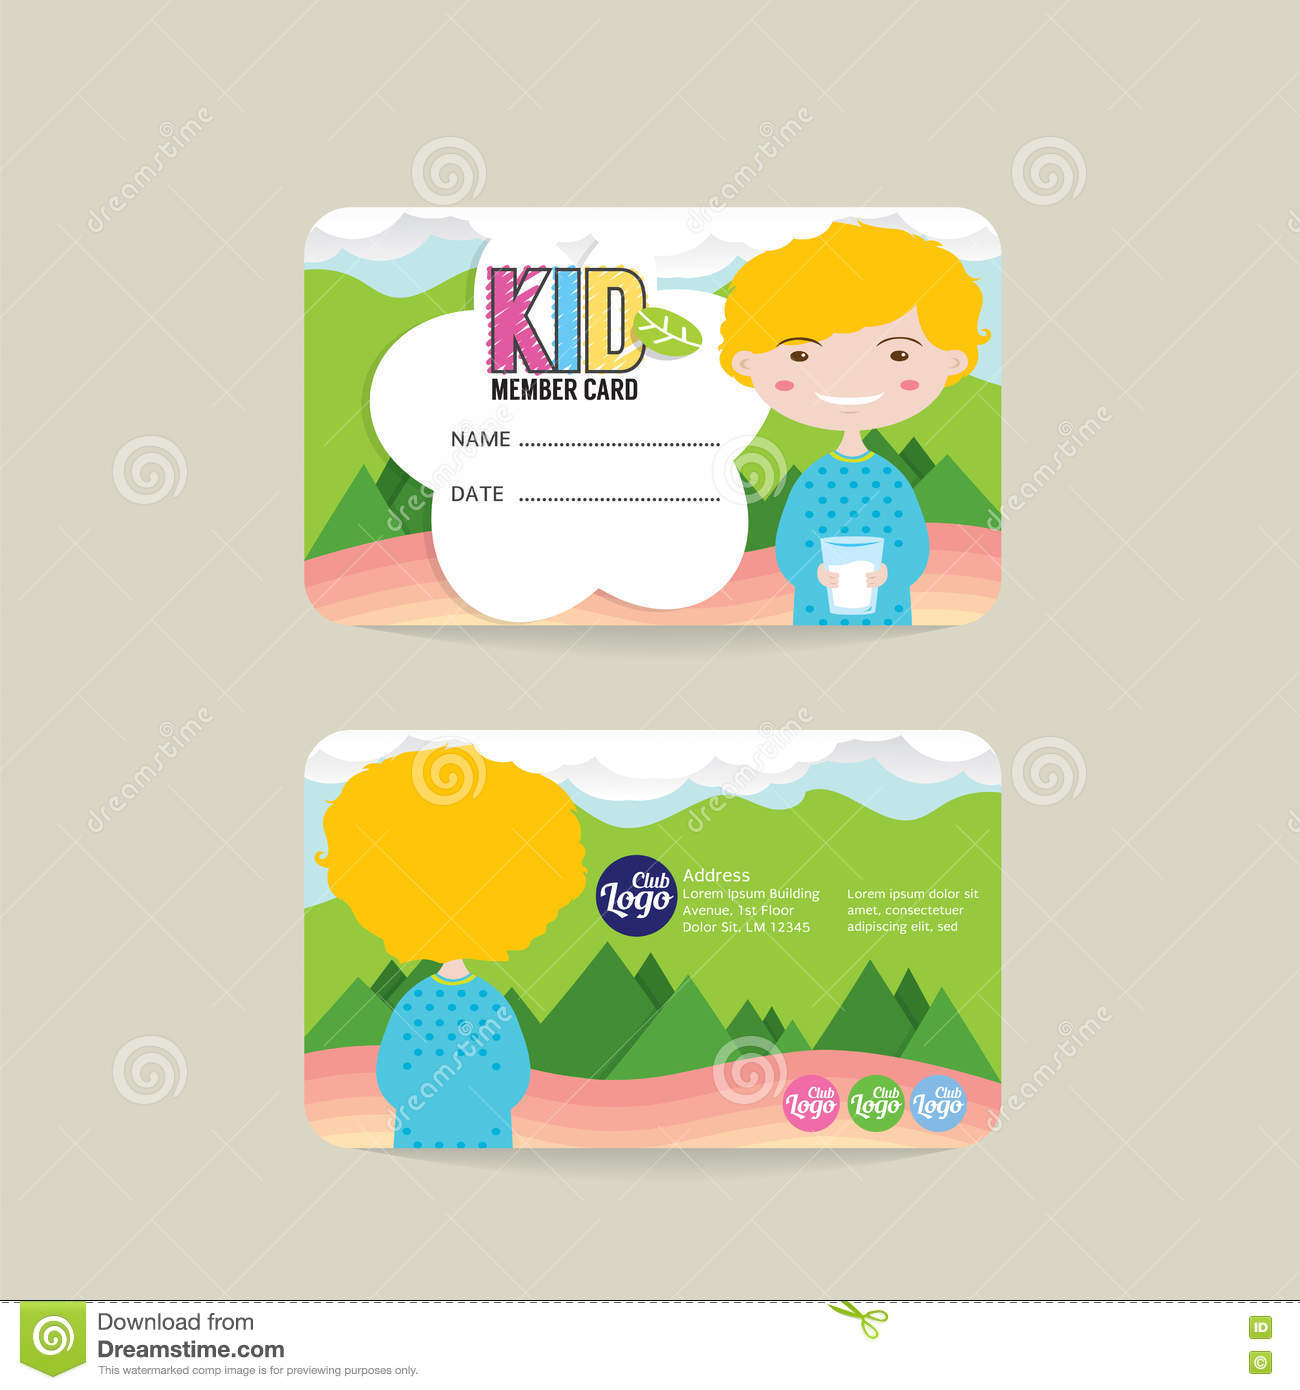 Front And Back Vip Kids Member Card Template Illustration 75010353